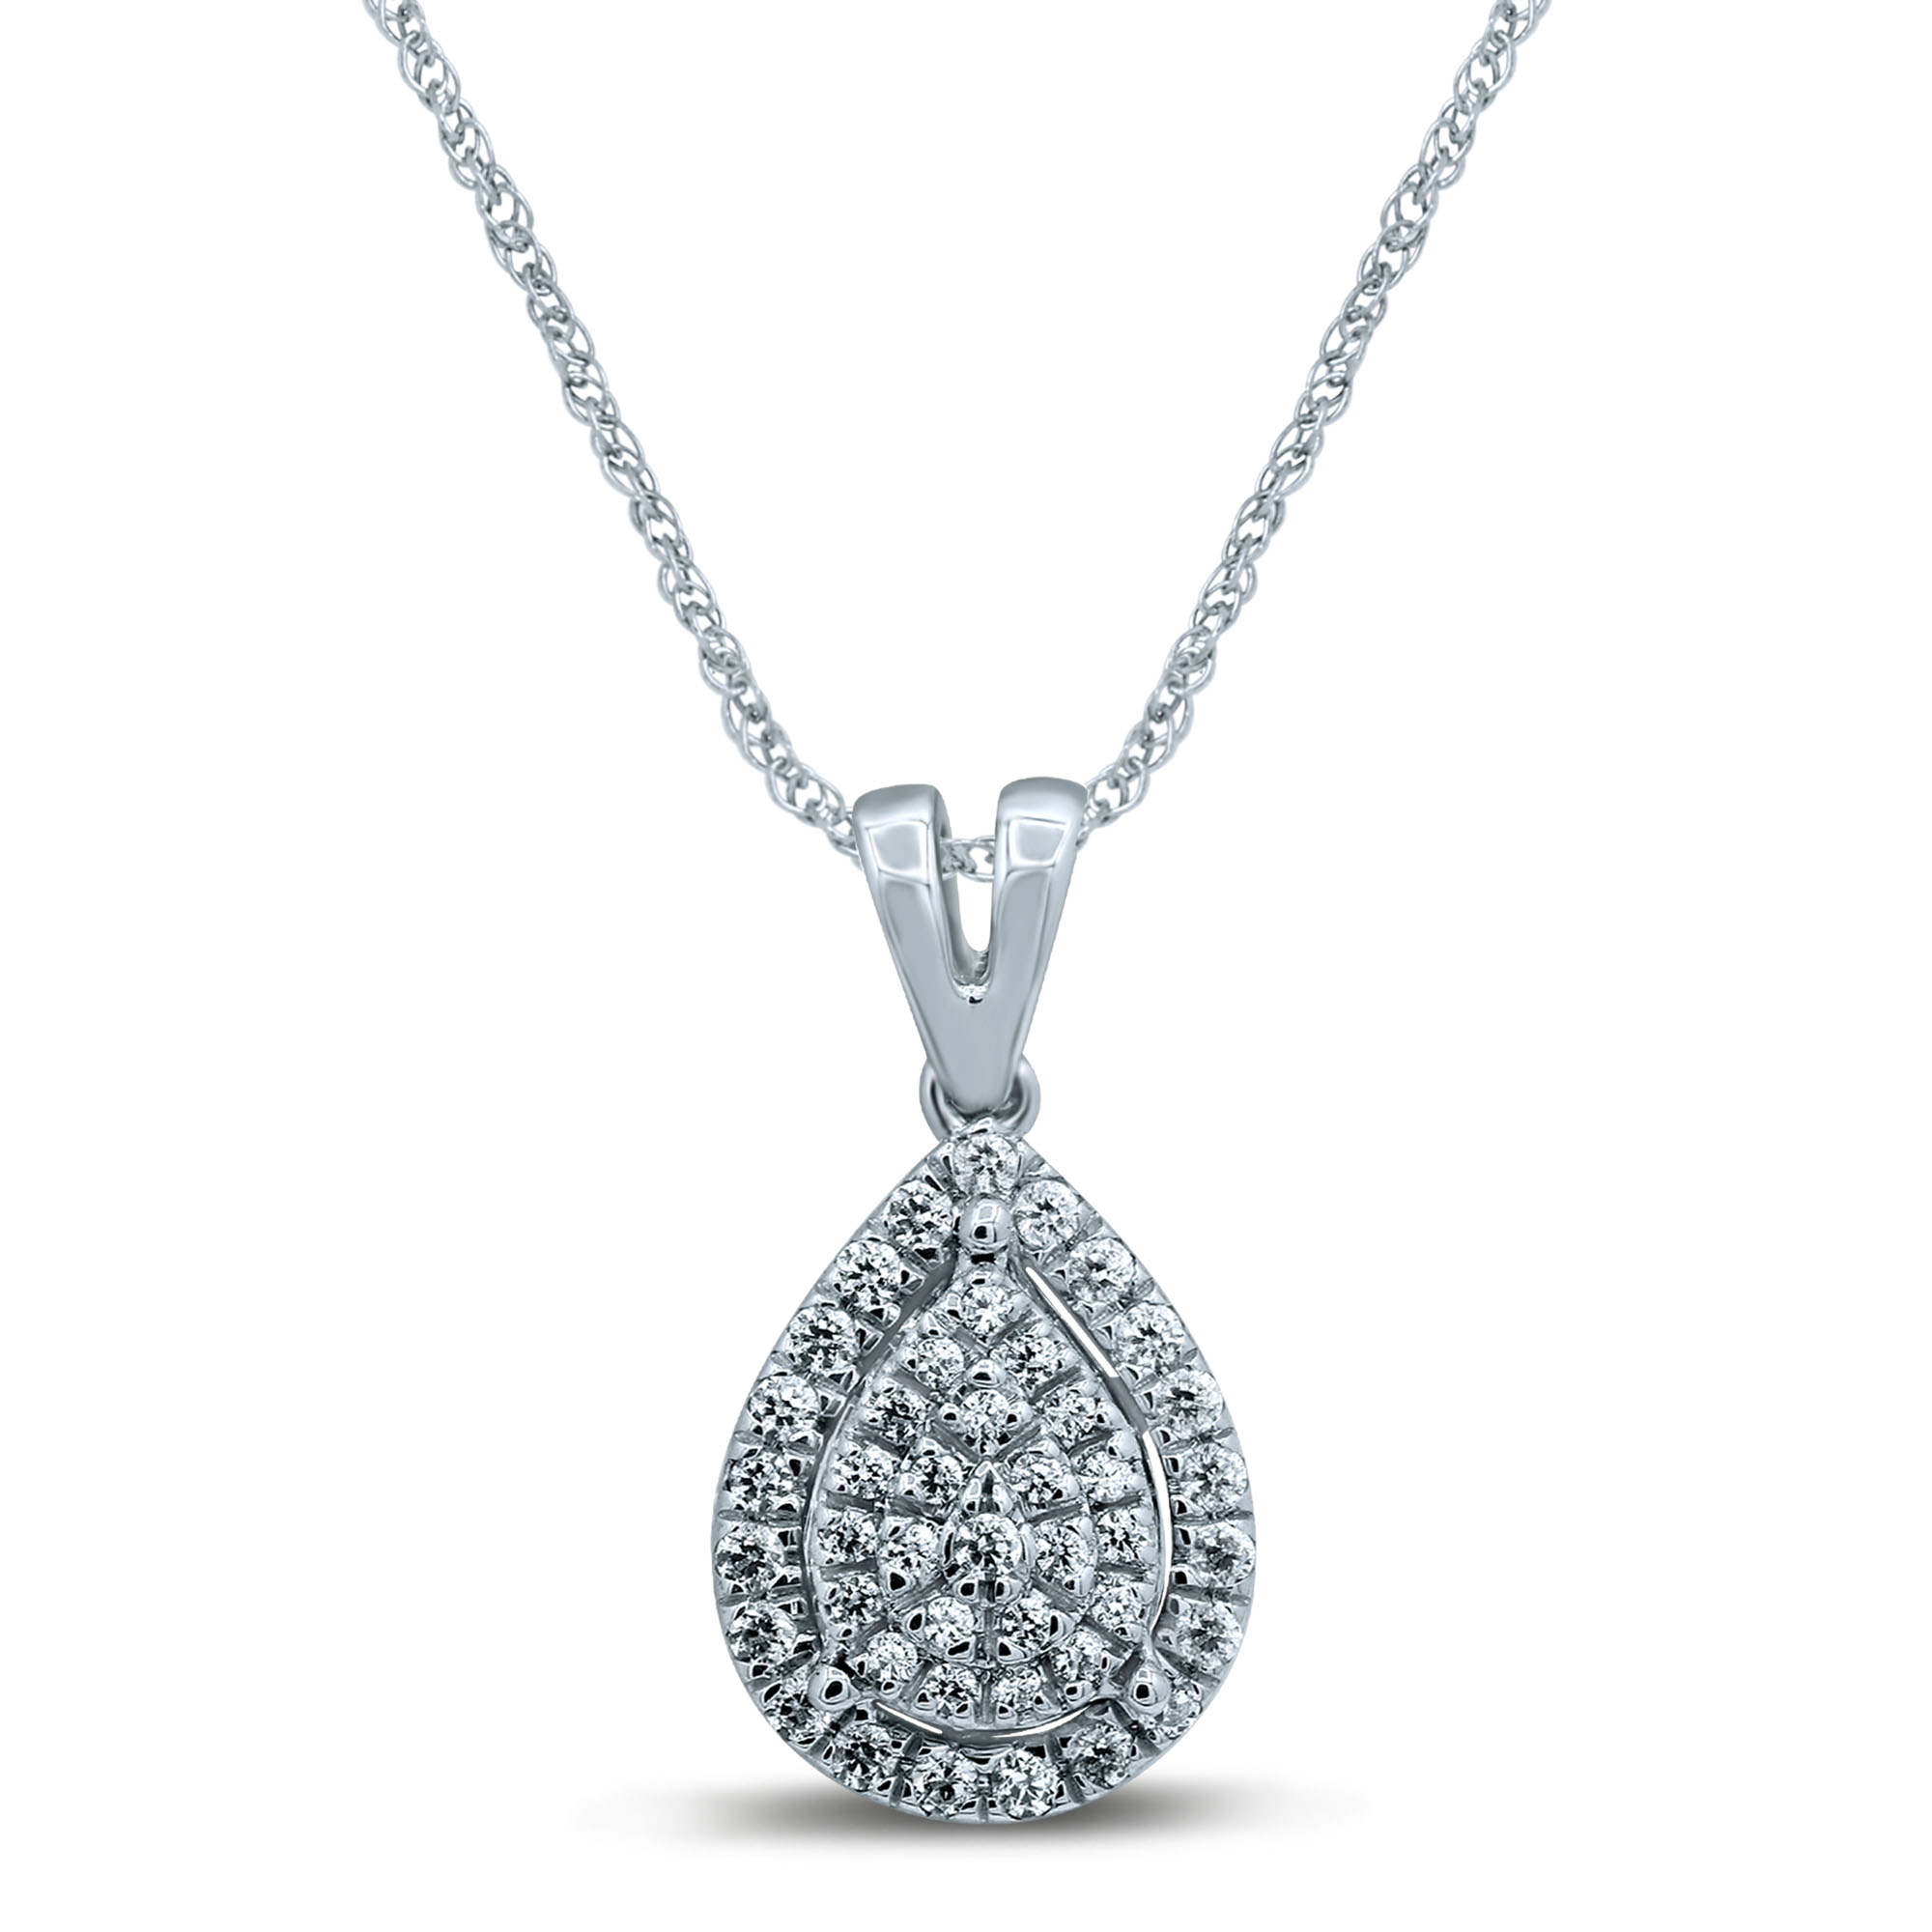 Sterling Silver 1/4 Carat Pear Shap Pendant With 45cm Rope Chain